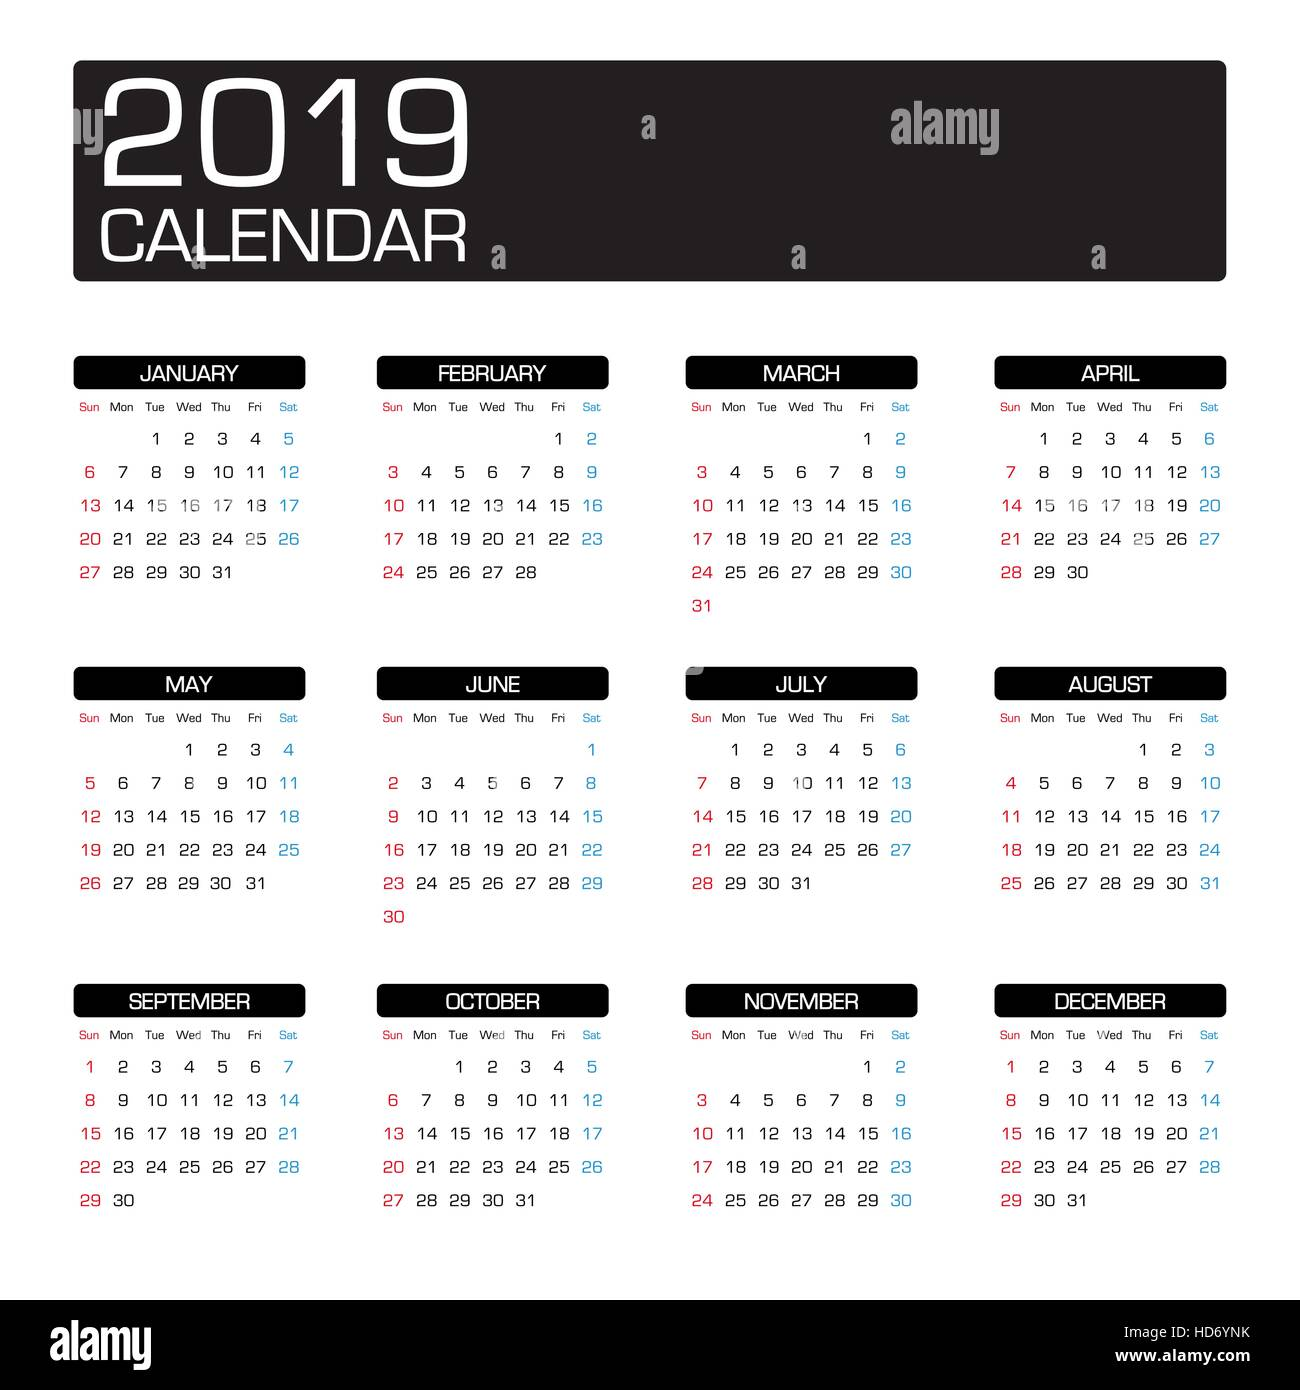 Free Comic Book Day 2019 List: July 2019 Calendar Stock Photos & July 2019 Calendar Stock